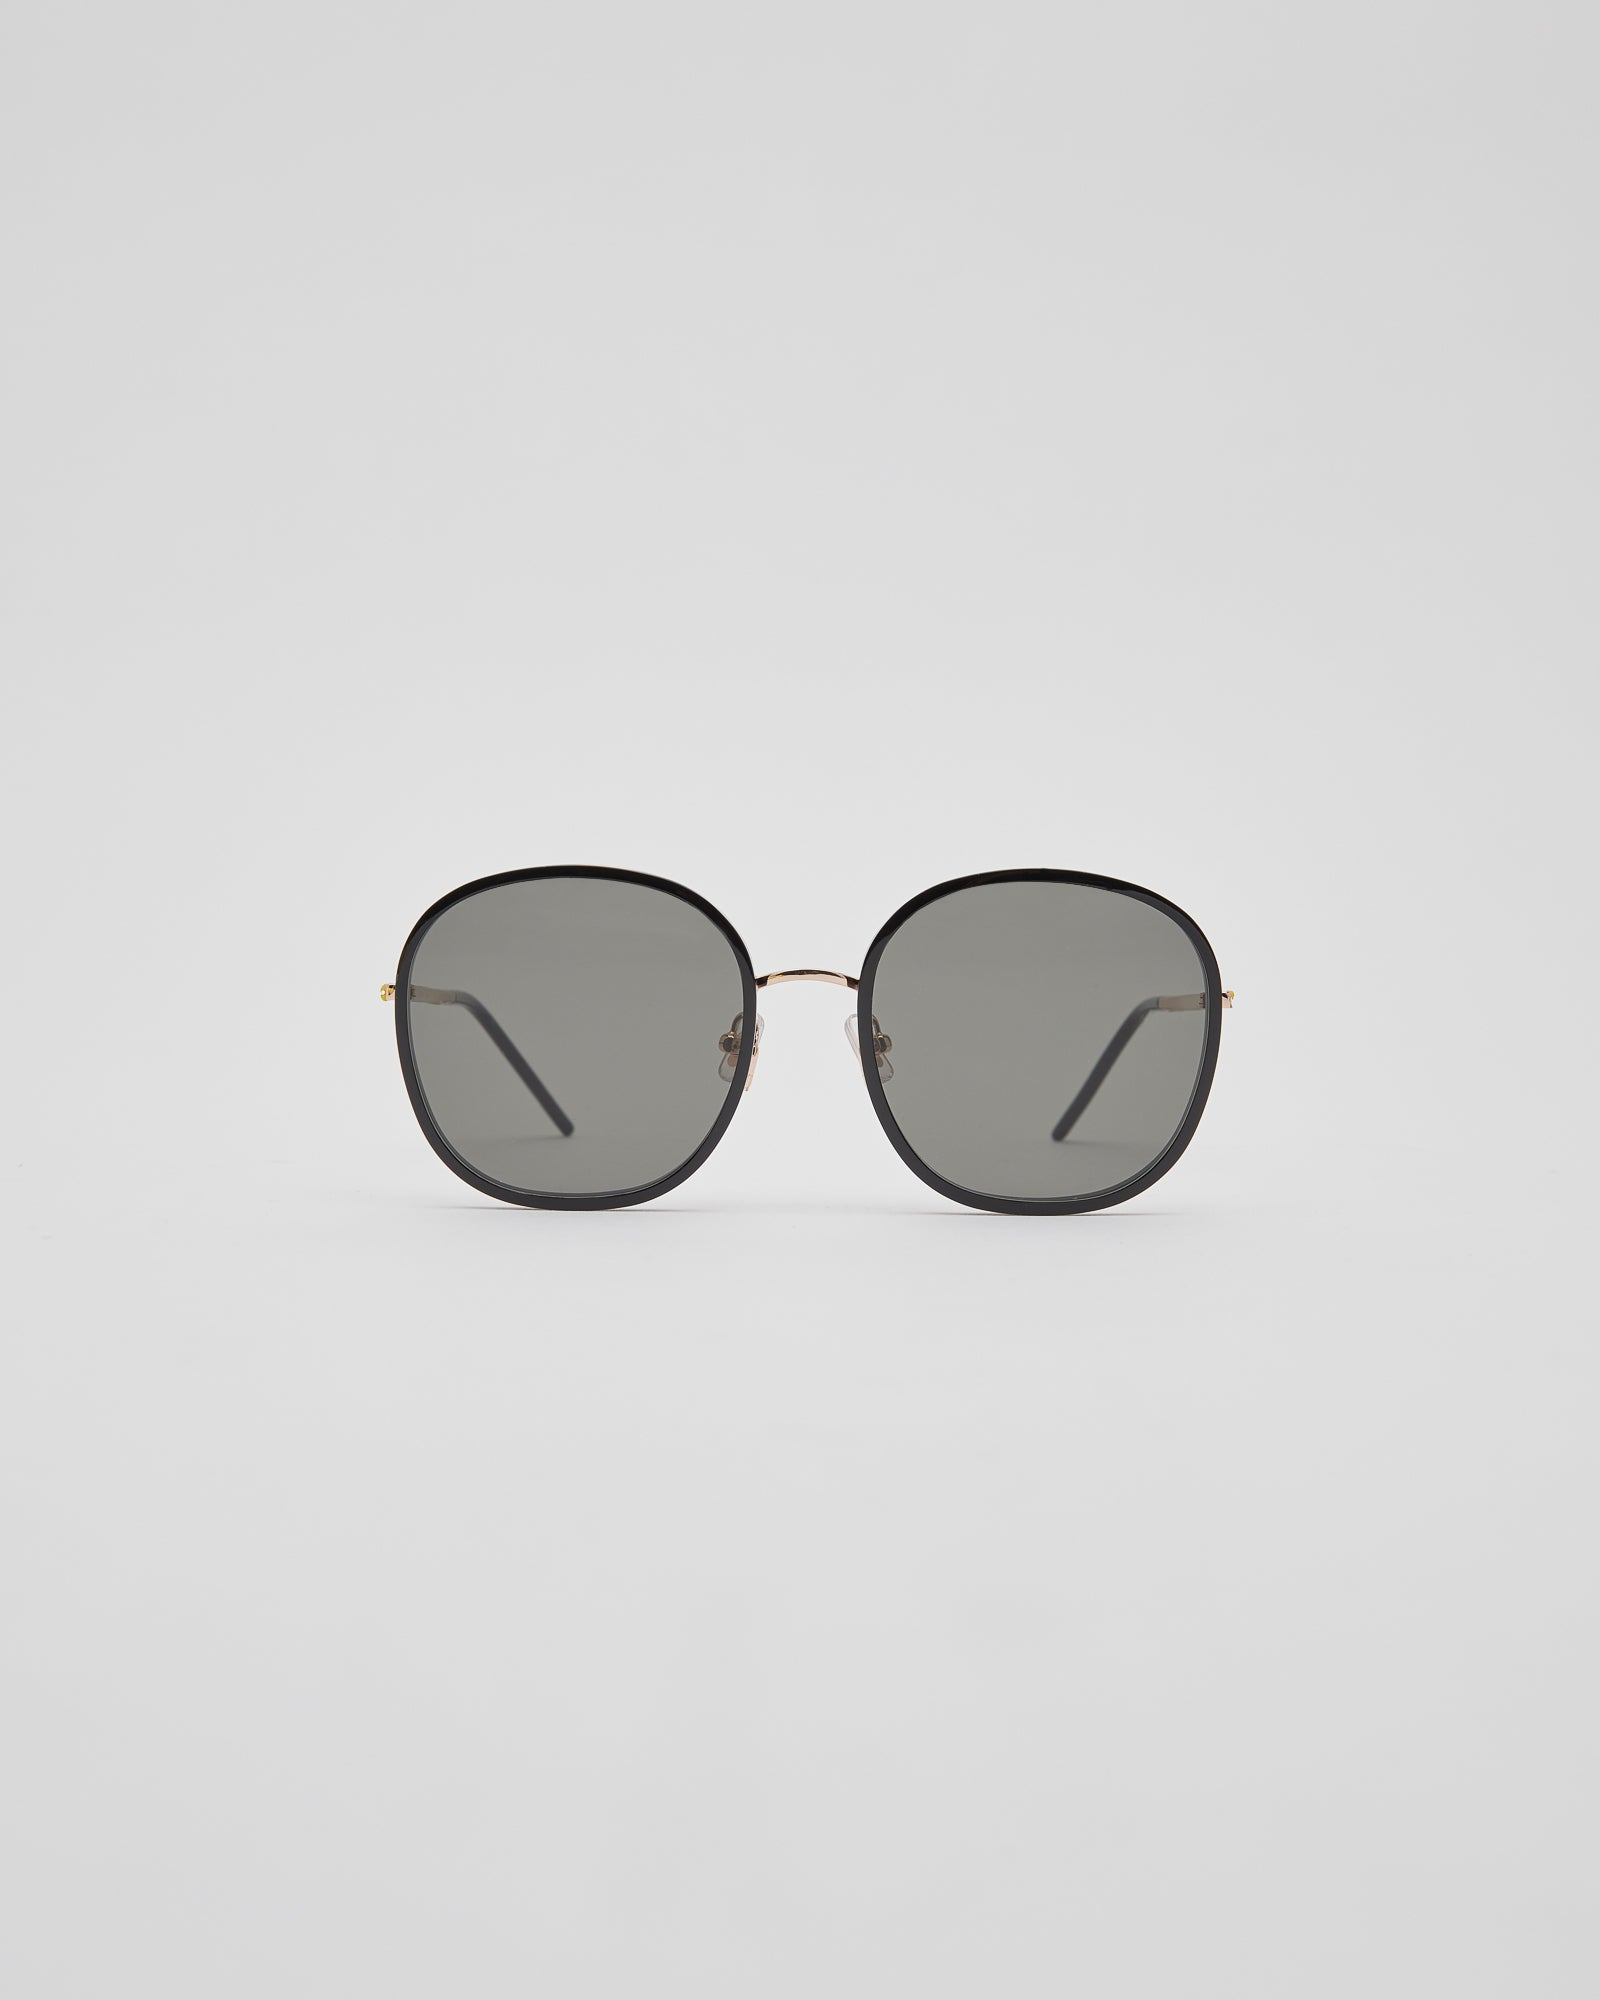 Rimo-01 Sunglasses in Black